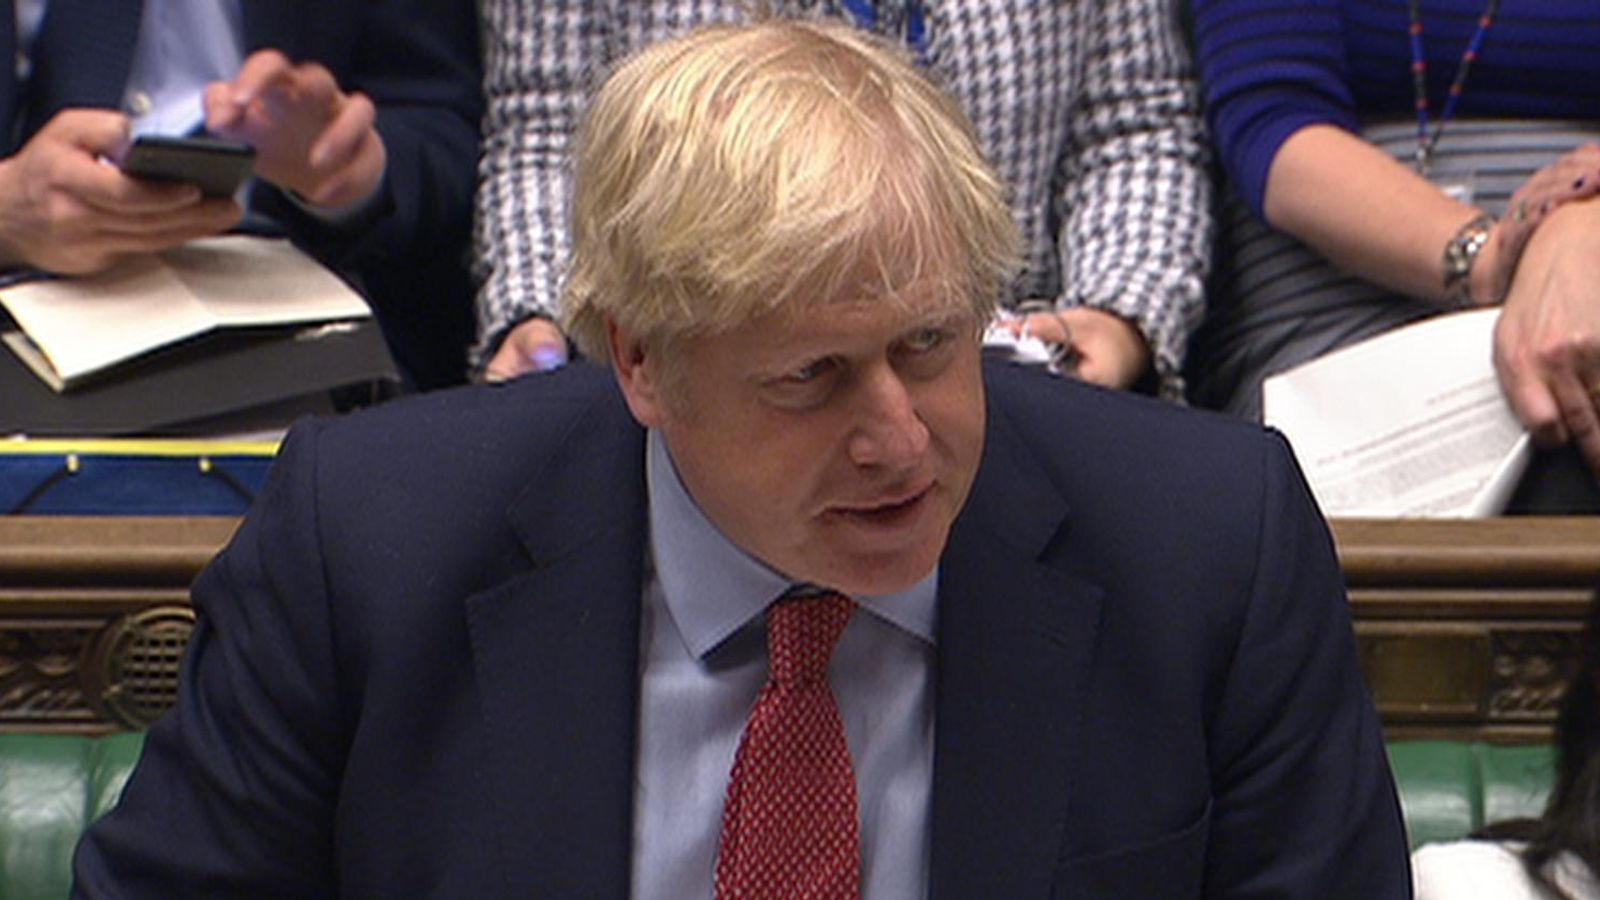 Boris Johnson asks for 'rancour and division' to be left behind after Brexit bill clears parliament